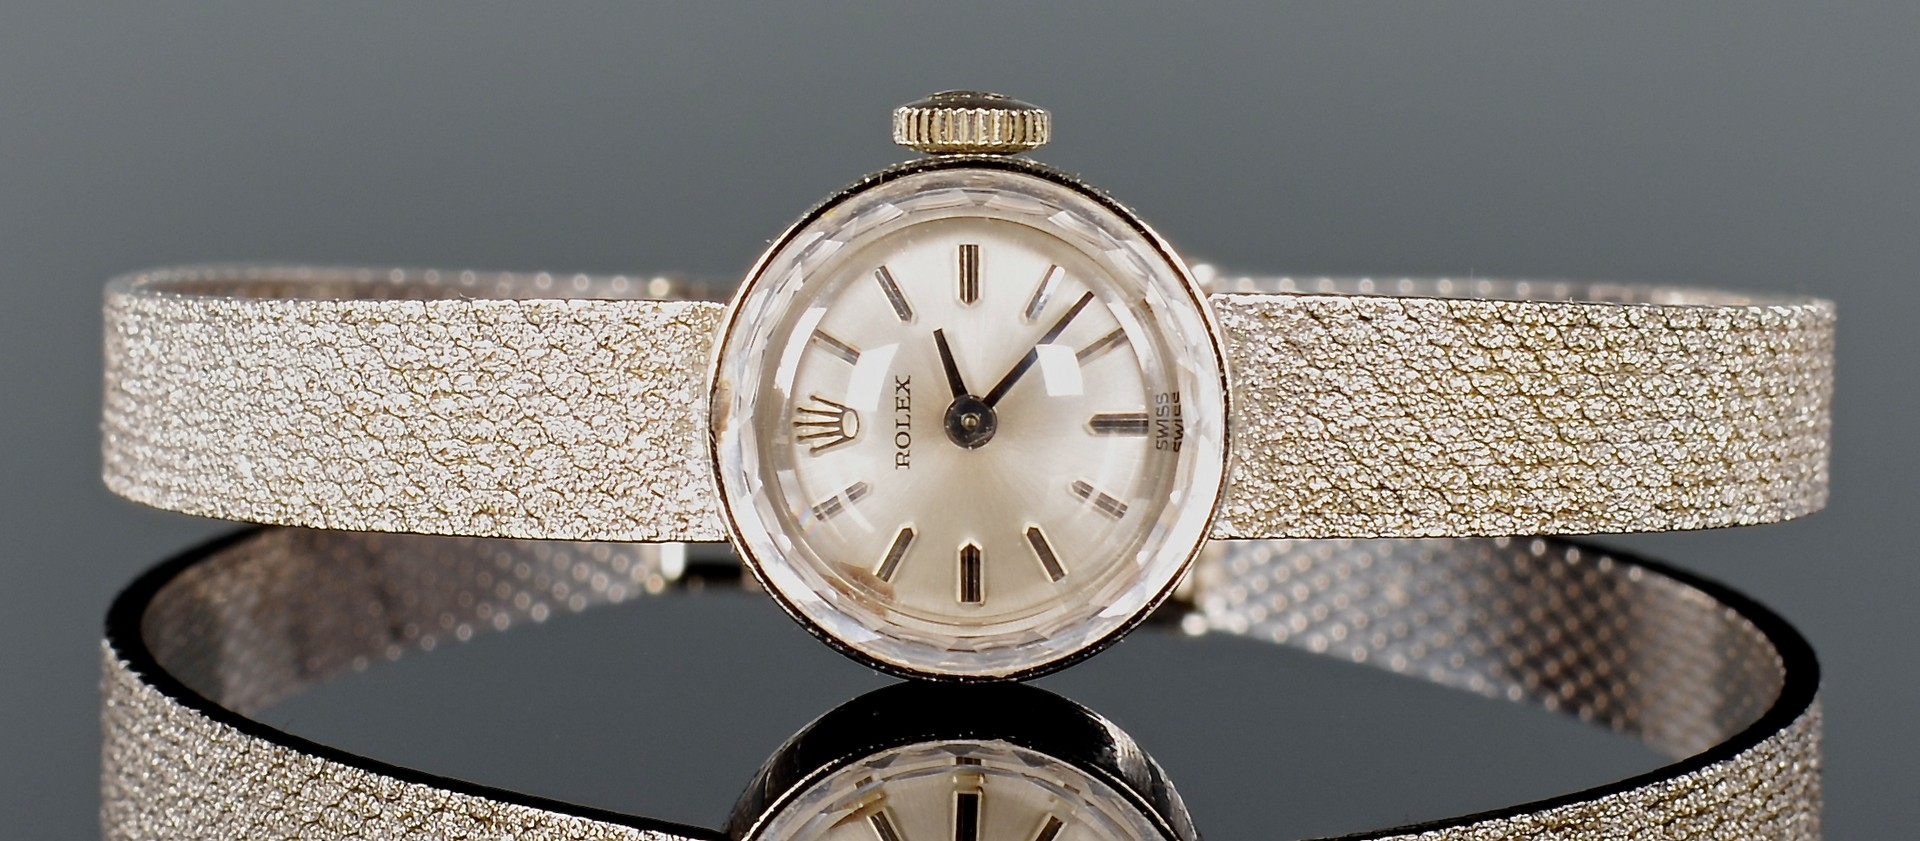 Lot 388: 14K Vintage Ladies Rolex Dress Watch